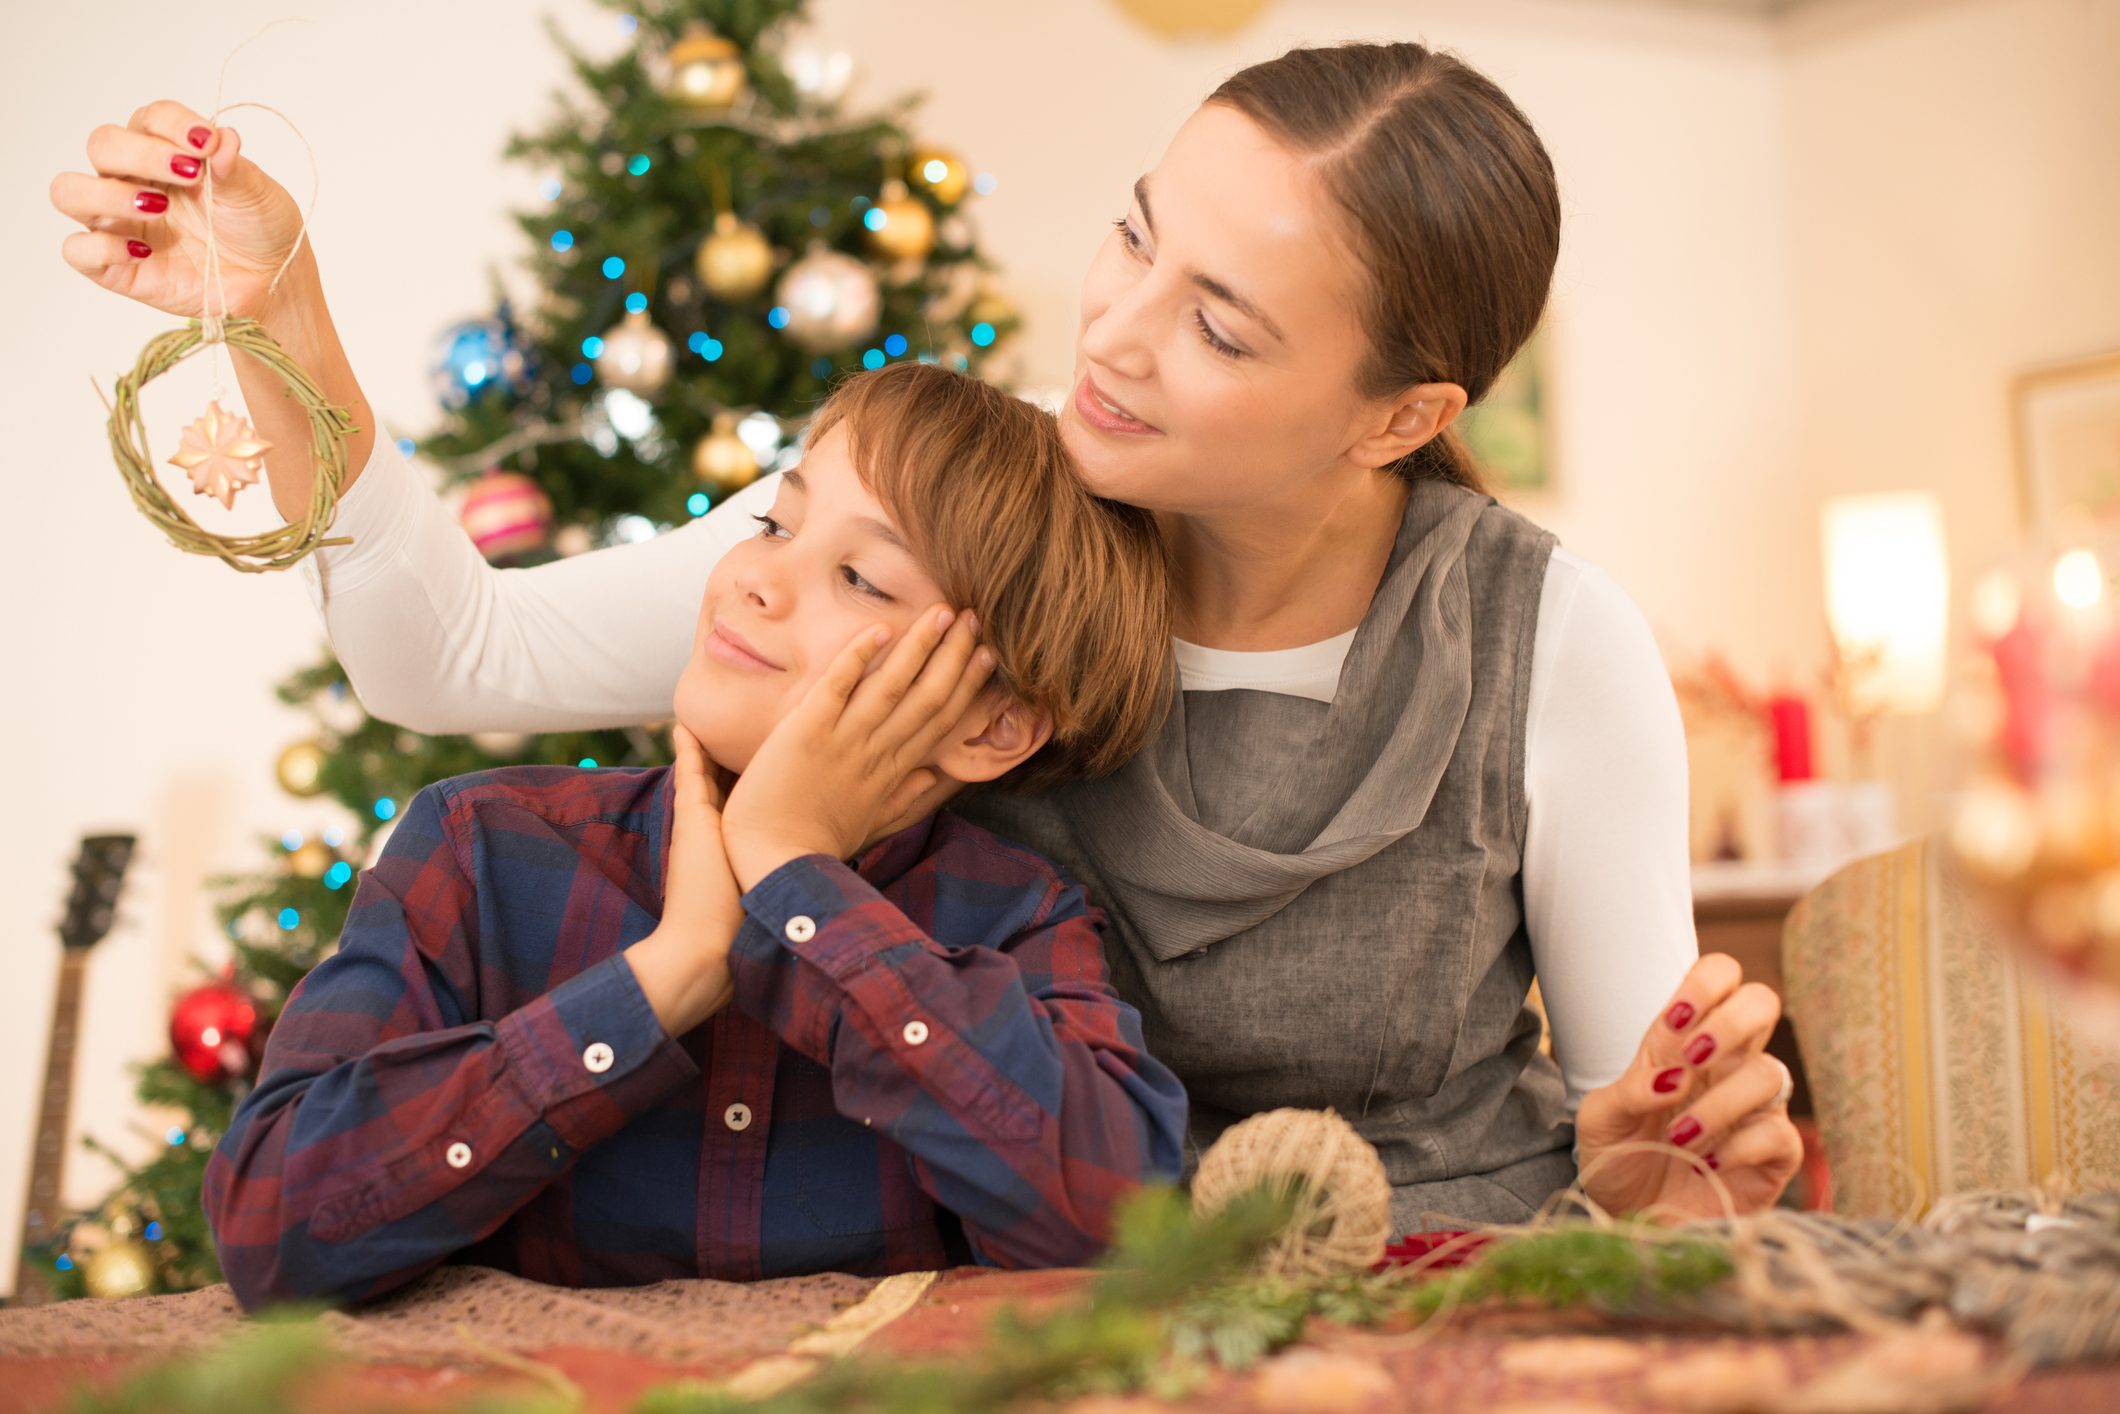 7 alternative family activities you could do during Advent